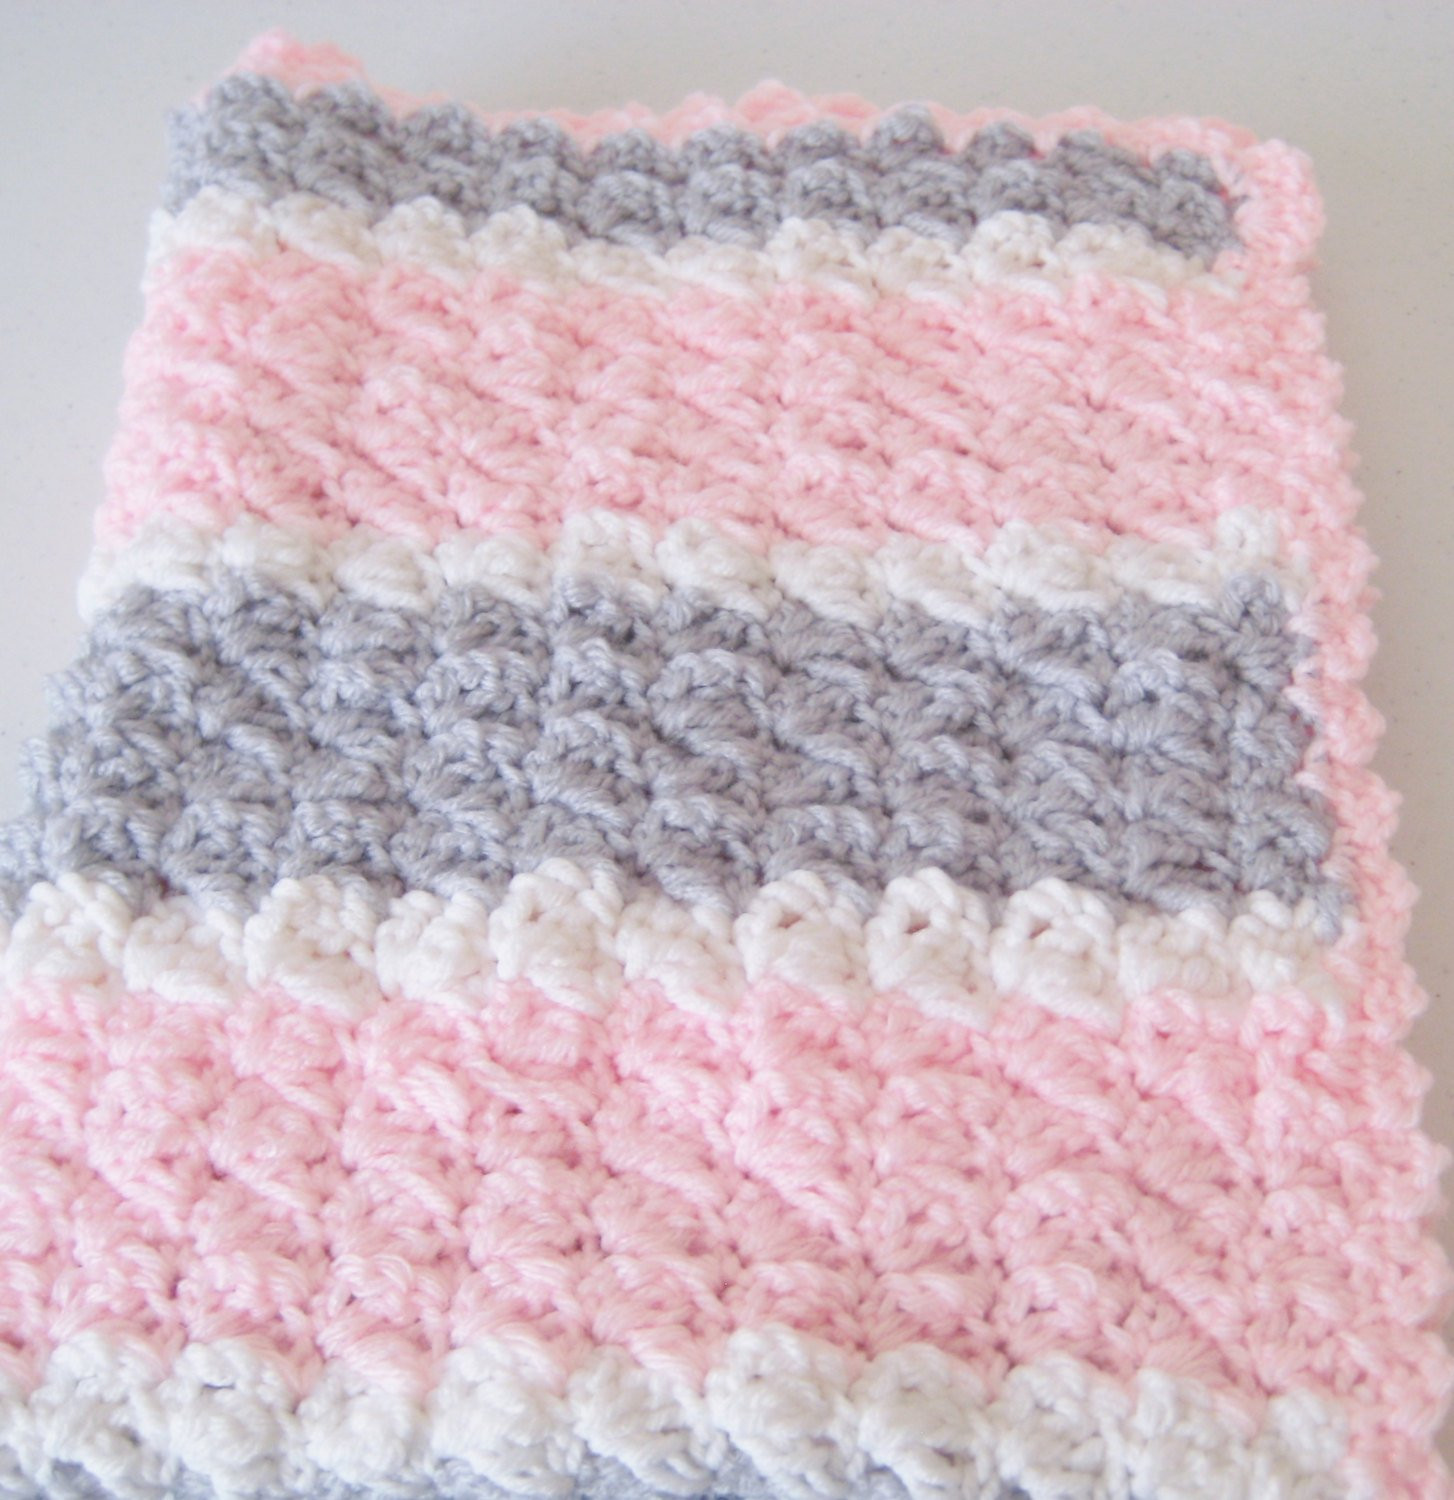 Lovely Crochet Baby Blanket Baby Shower Gift Crochet Baby Travel Crochet Baby Gift Of Innovative 49 Models Crochet Baby Gift